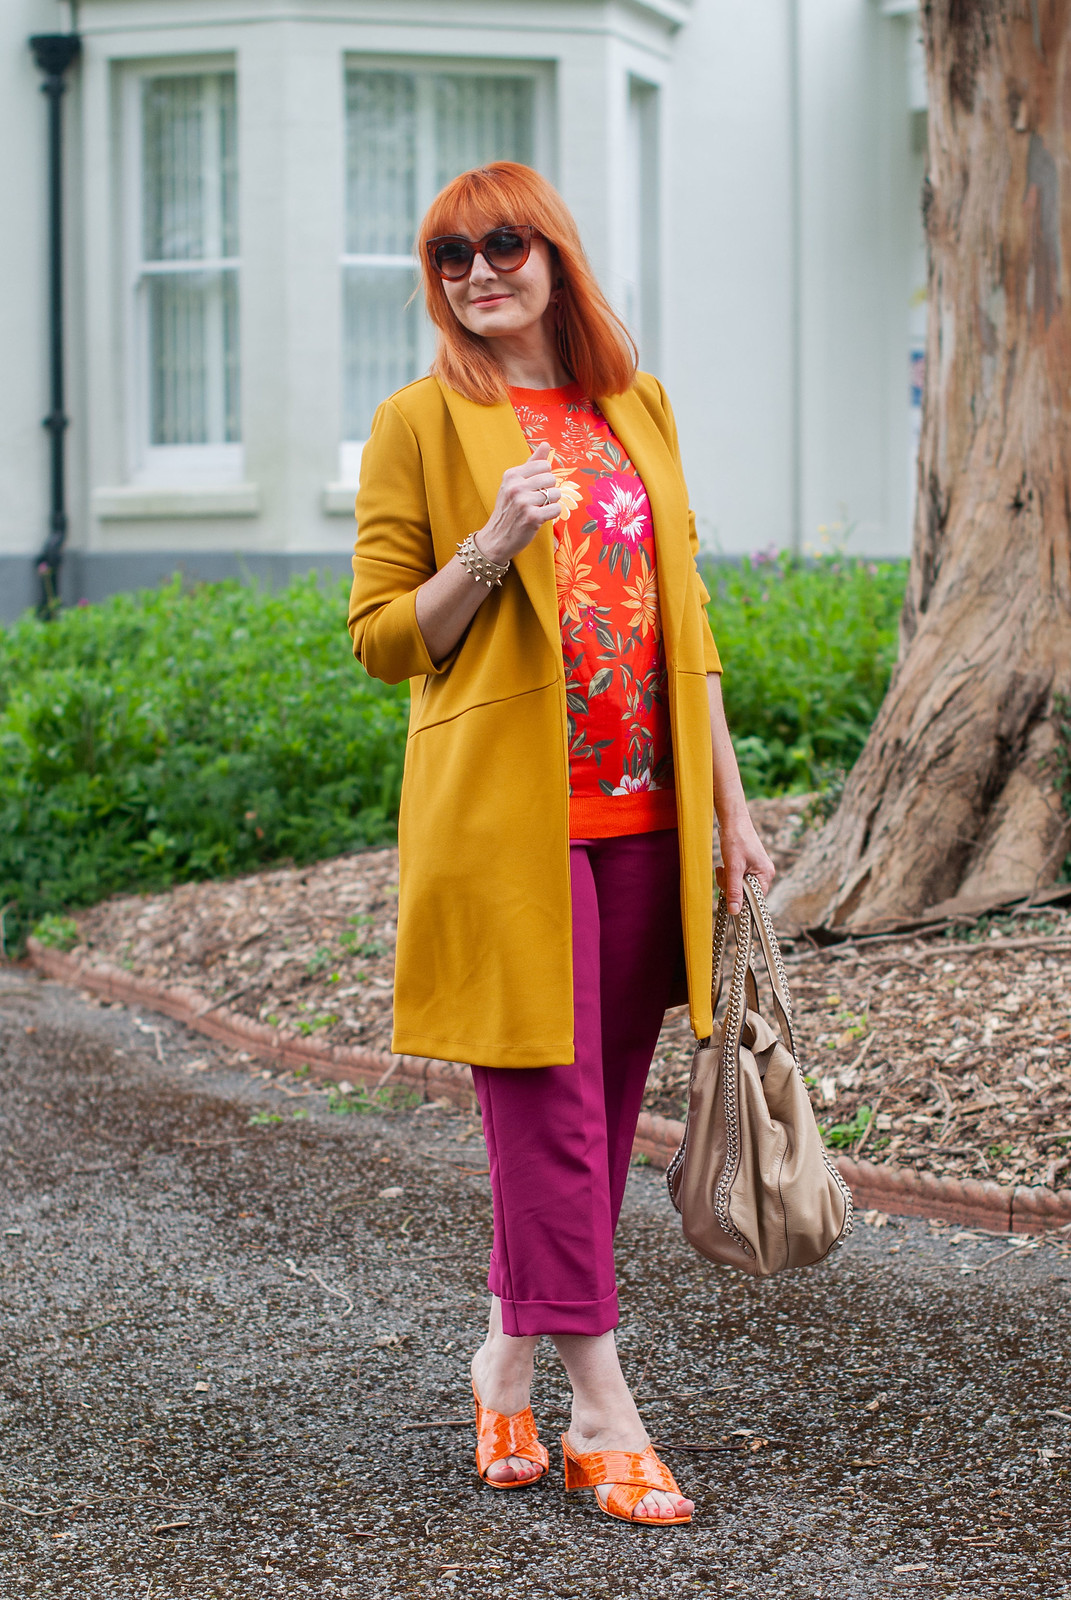 Over 40 Style - All the Bold Colours for Spring/Summer (Yellow, Orange Florals and Magenta) | Not Dressed As Lamb, over 40 fashion blog